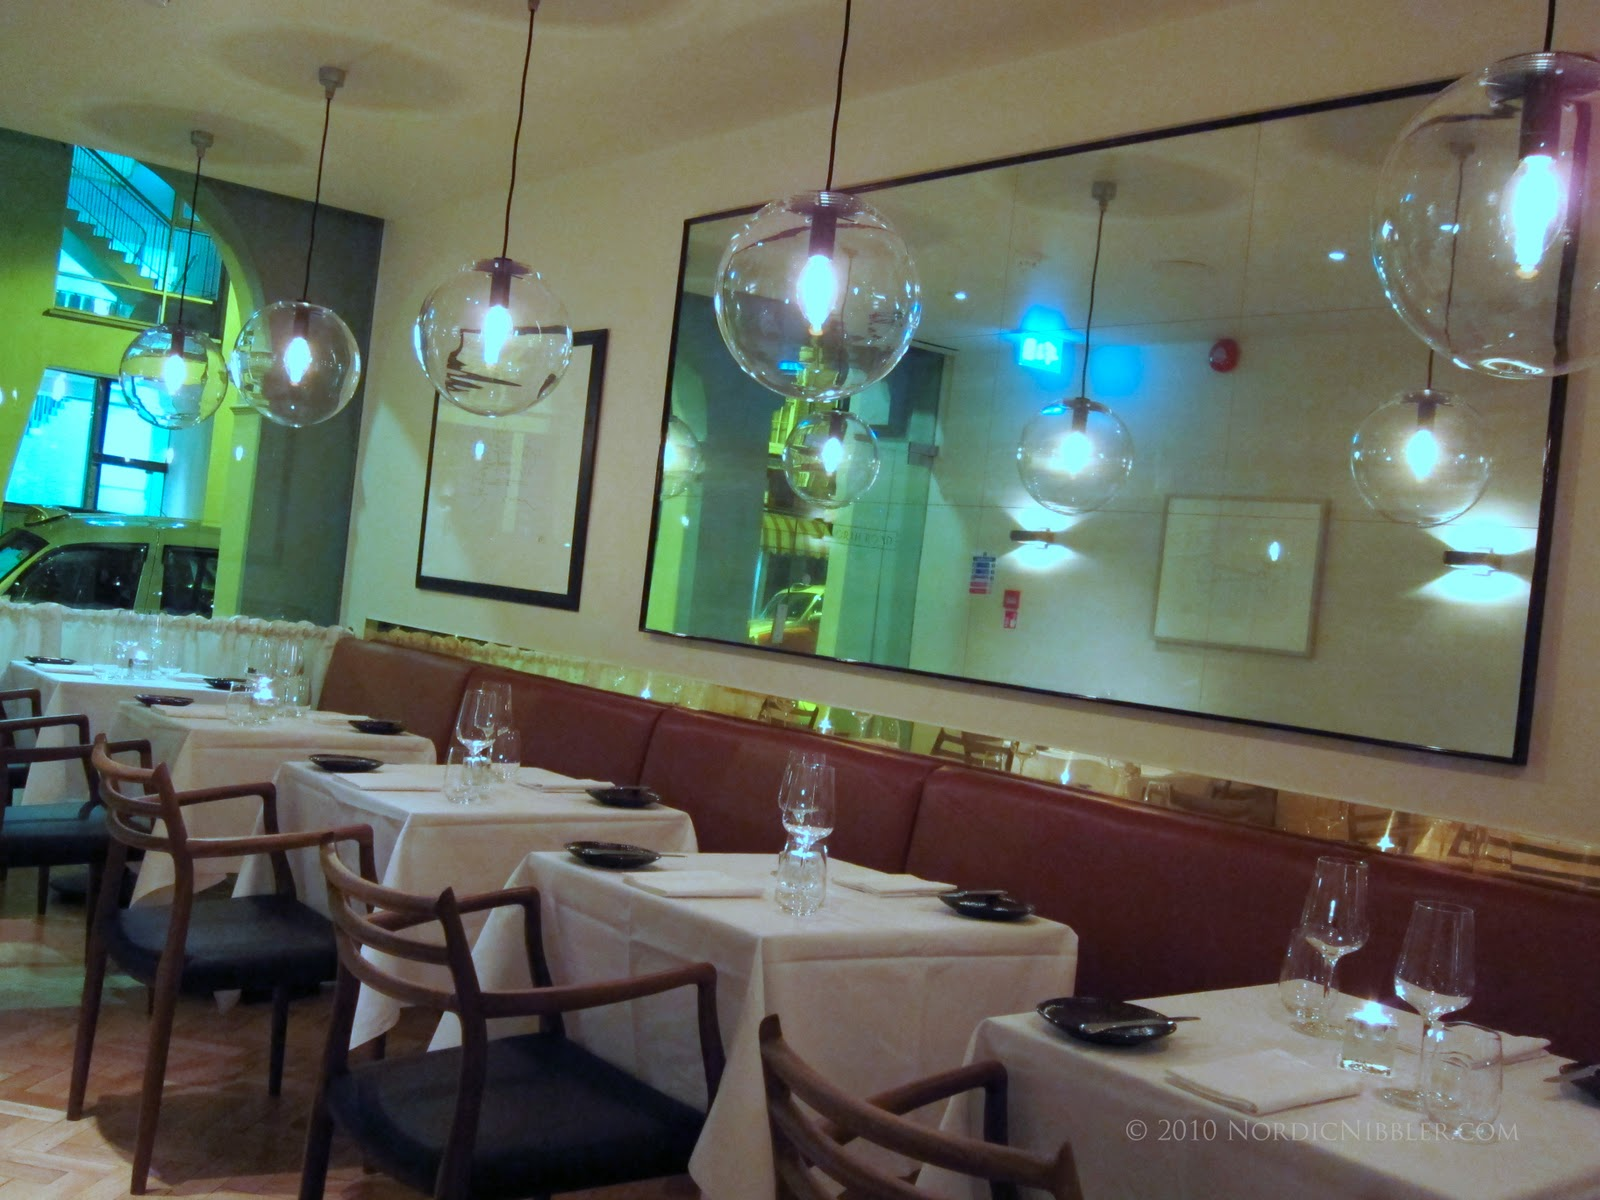 Kitchen Table London Review Nordic Nibbler North Road London Restaurant Review Now Closed